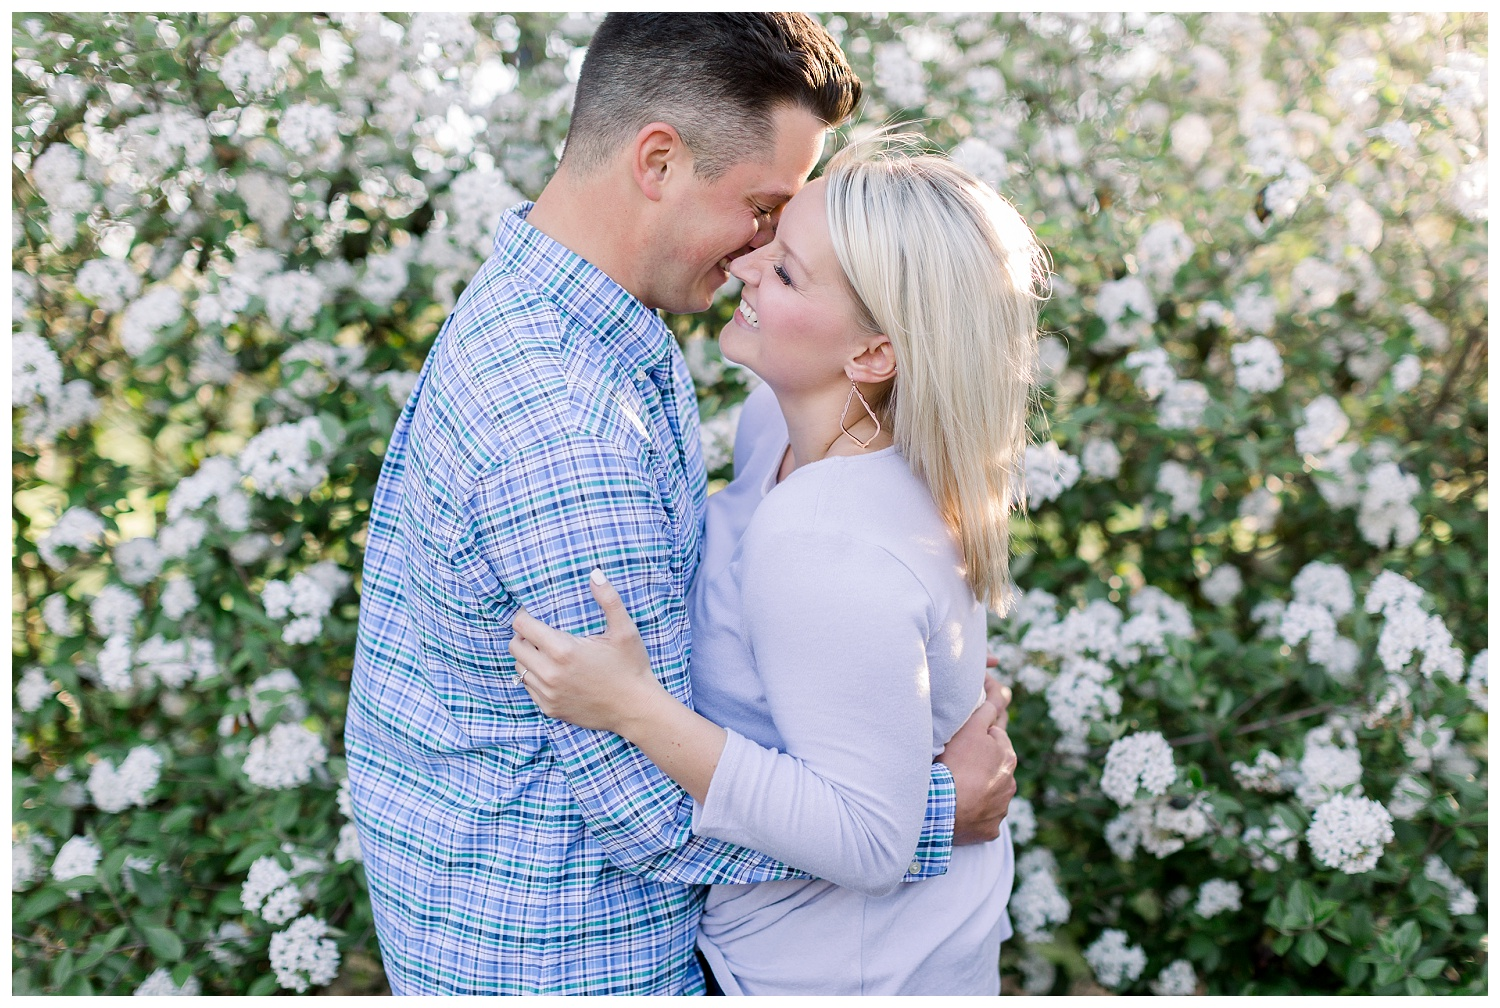 Spring engagement session with flowers